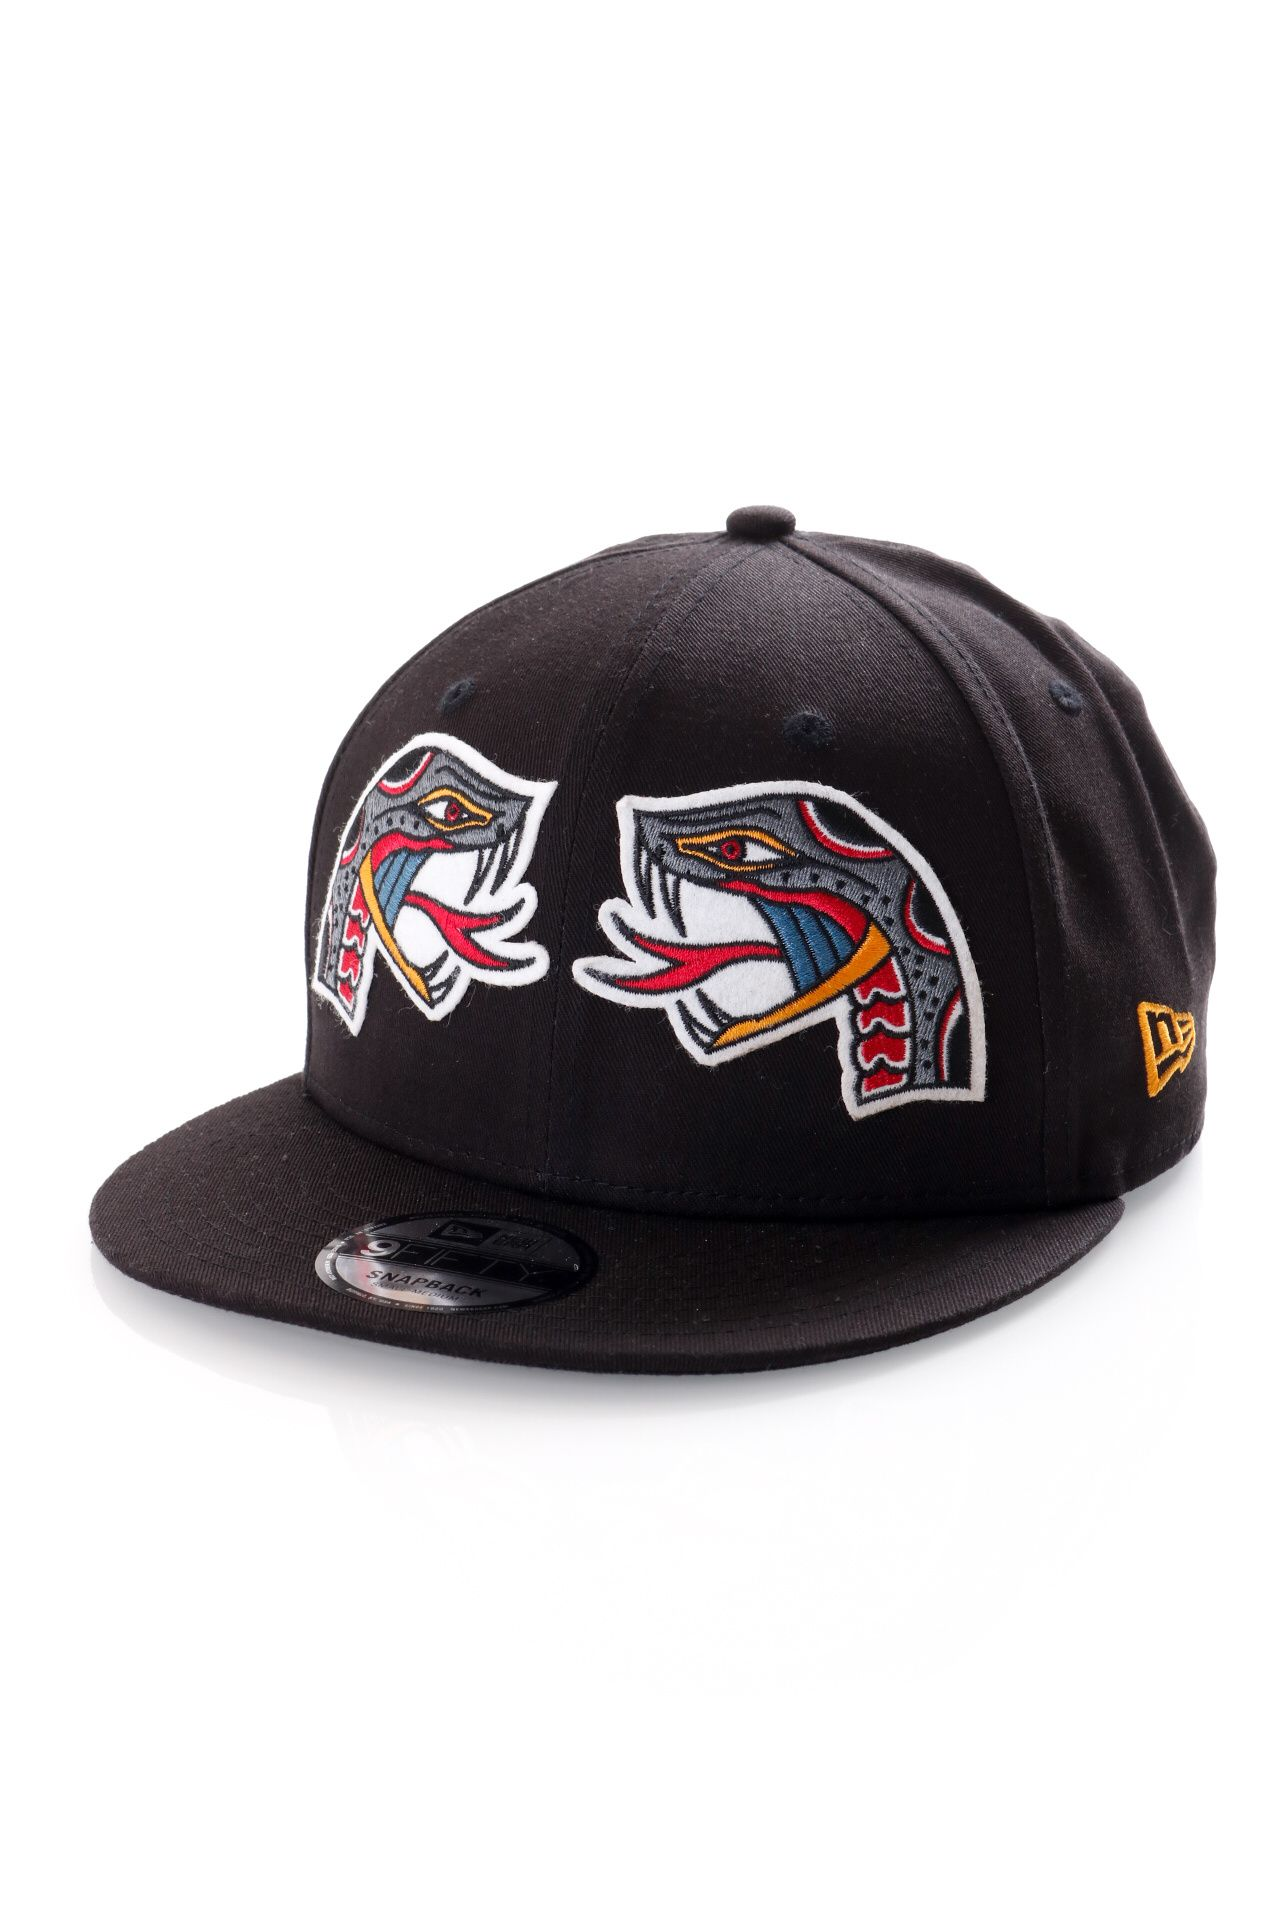 Afbeelding van New Era Snapback Cap NE TATTOO PACK 9FIFTY Black 12490056